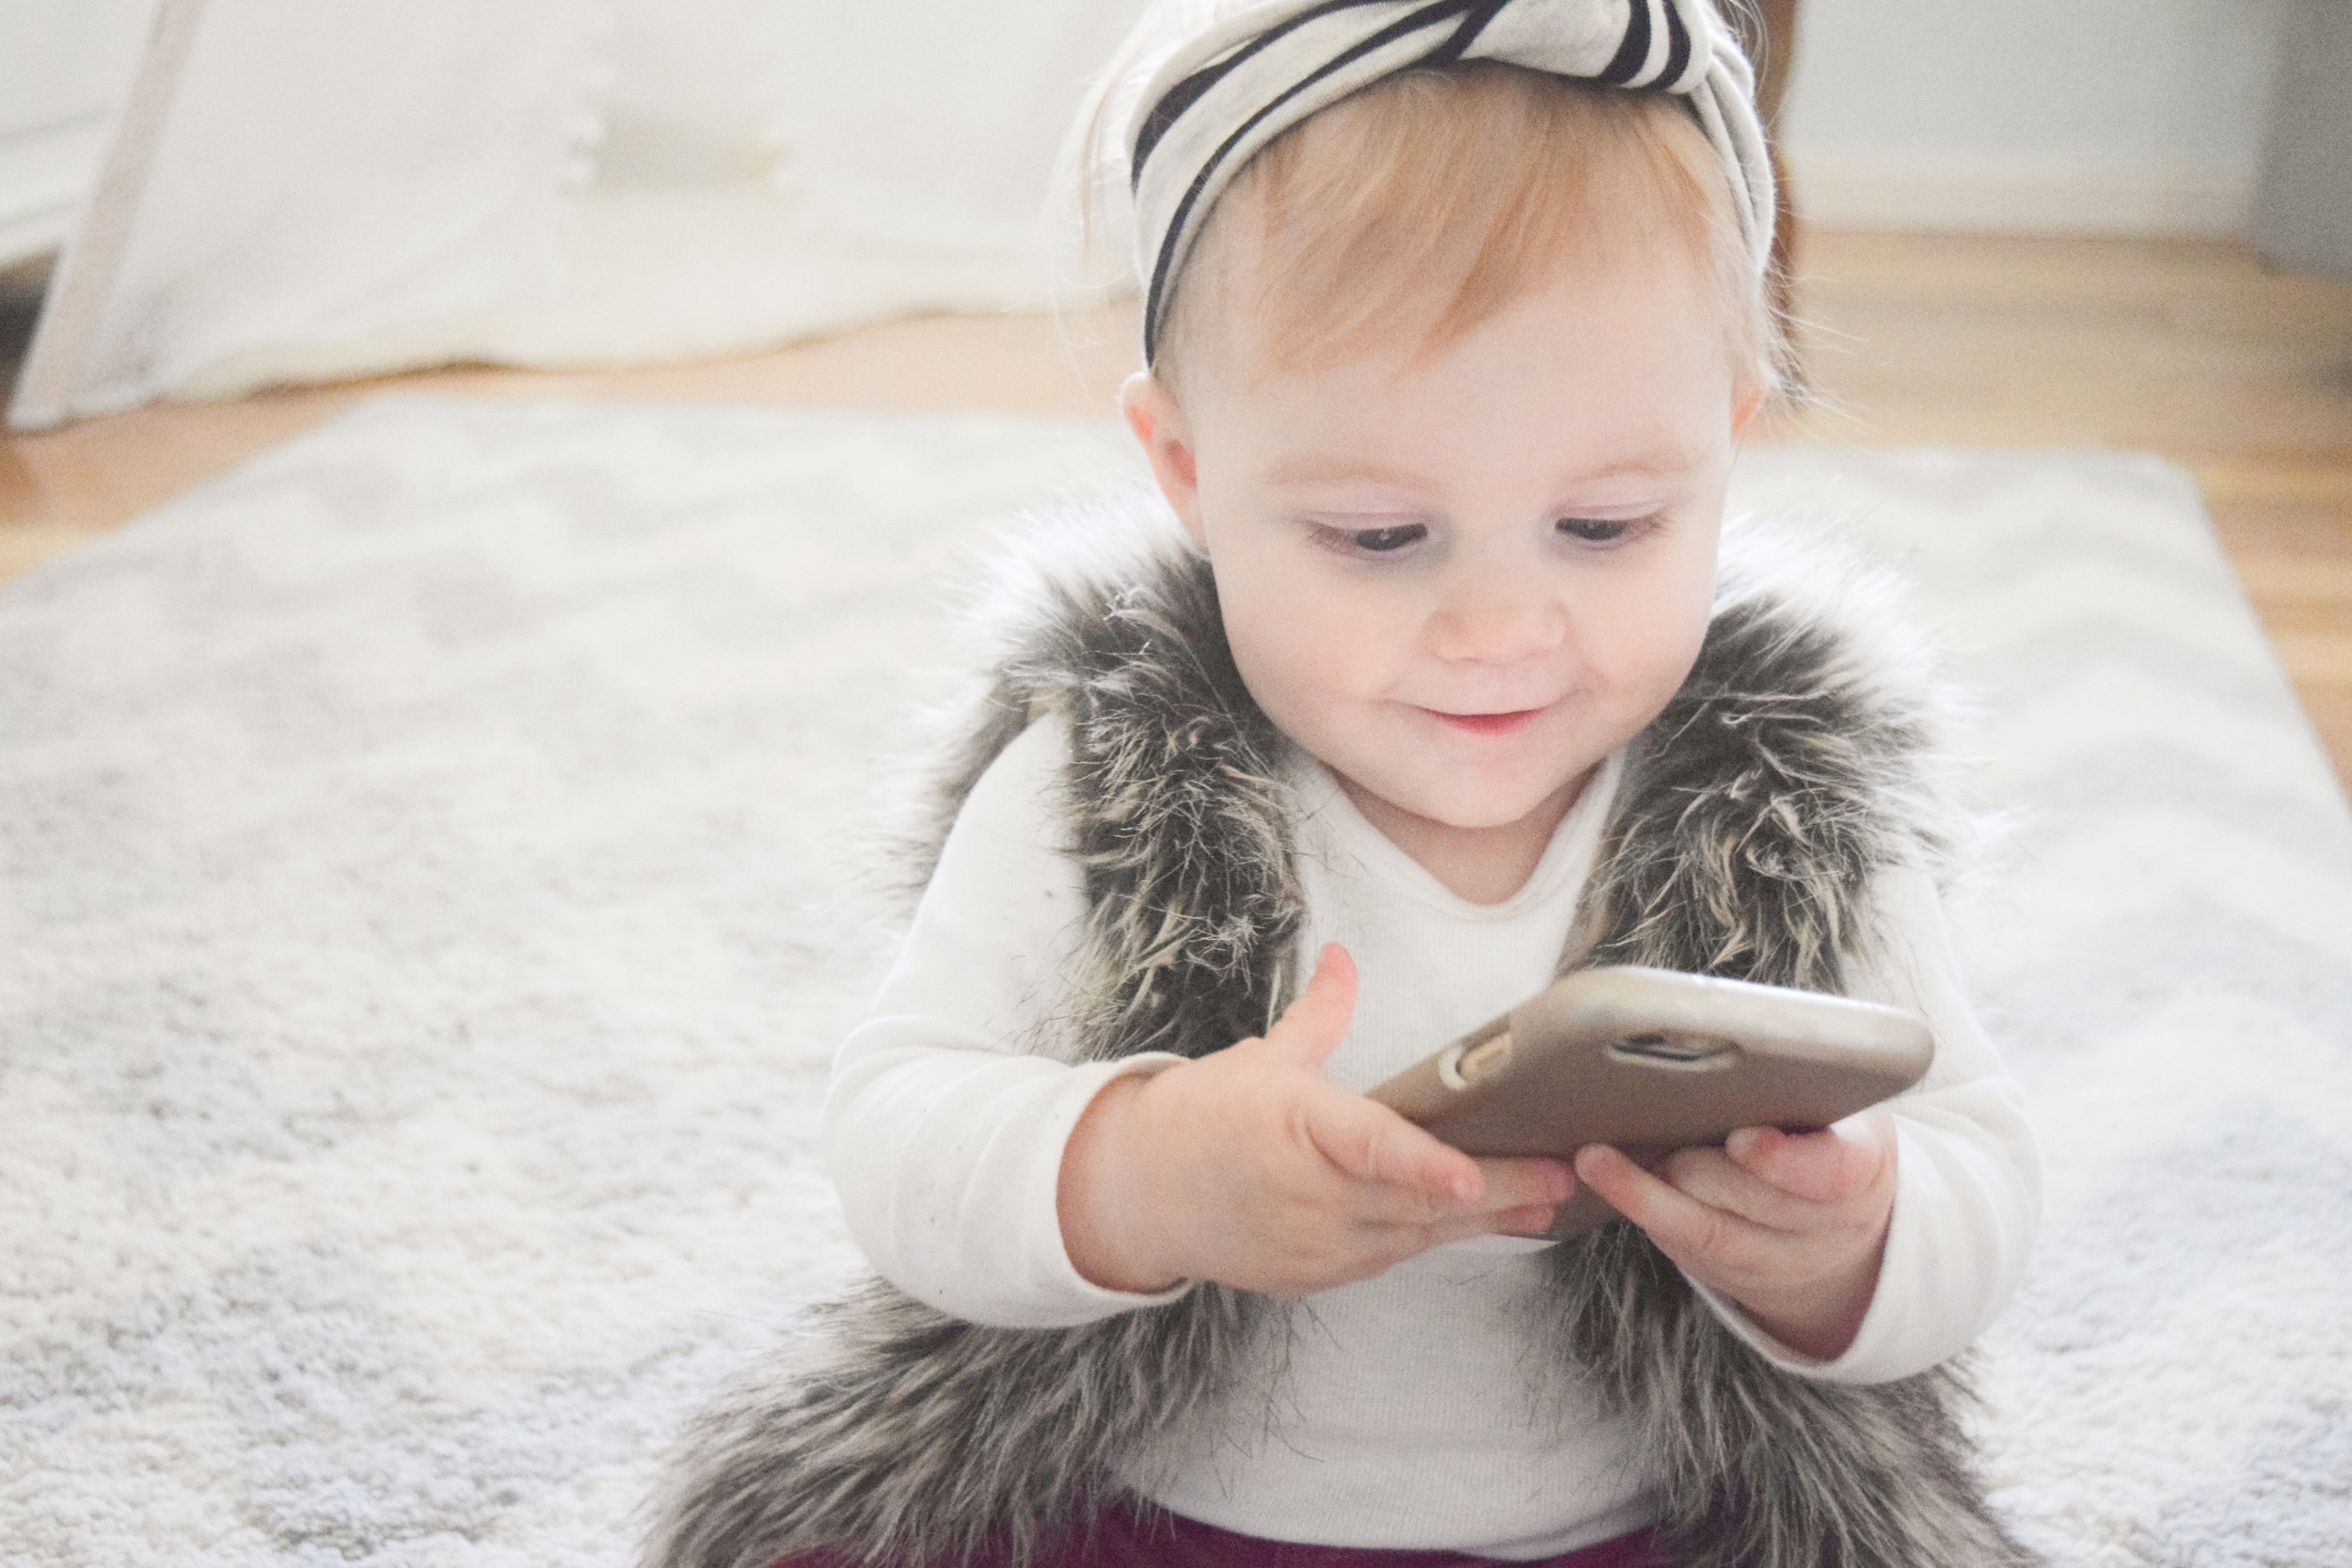 Baby Fashion - Baby Fur Vest, Rose Gold Baby Moccasins, Baby Headbands